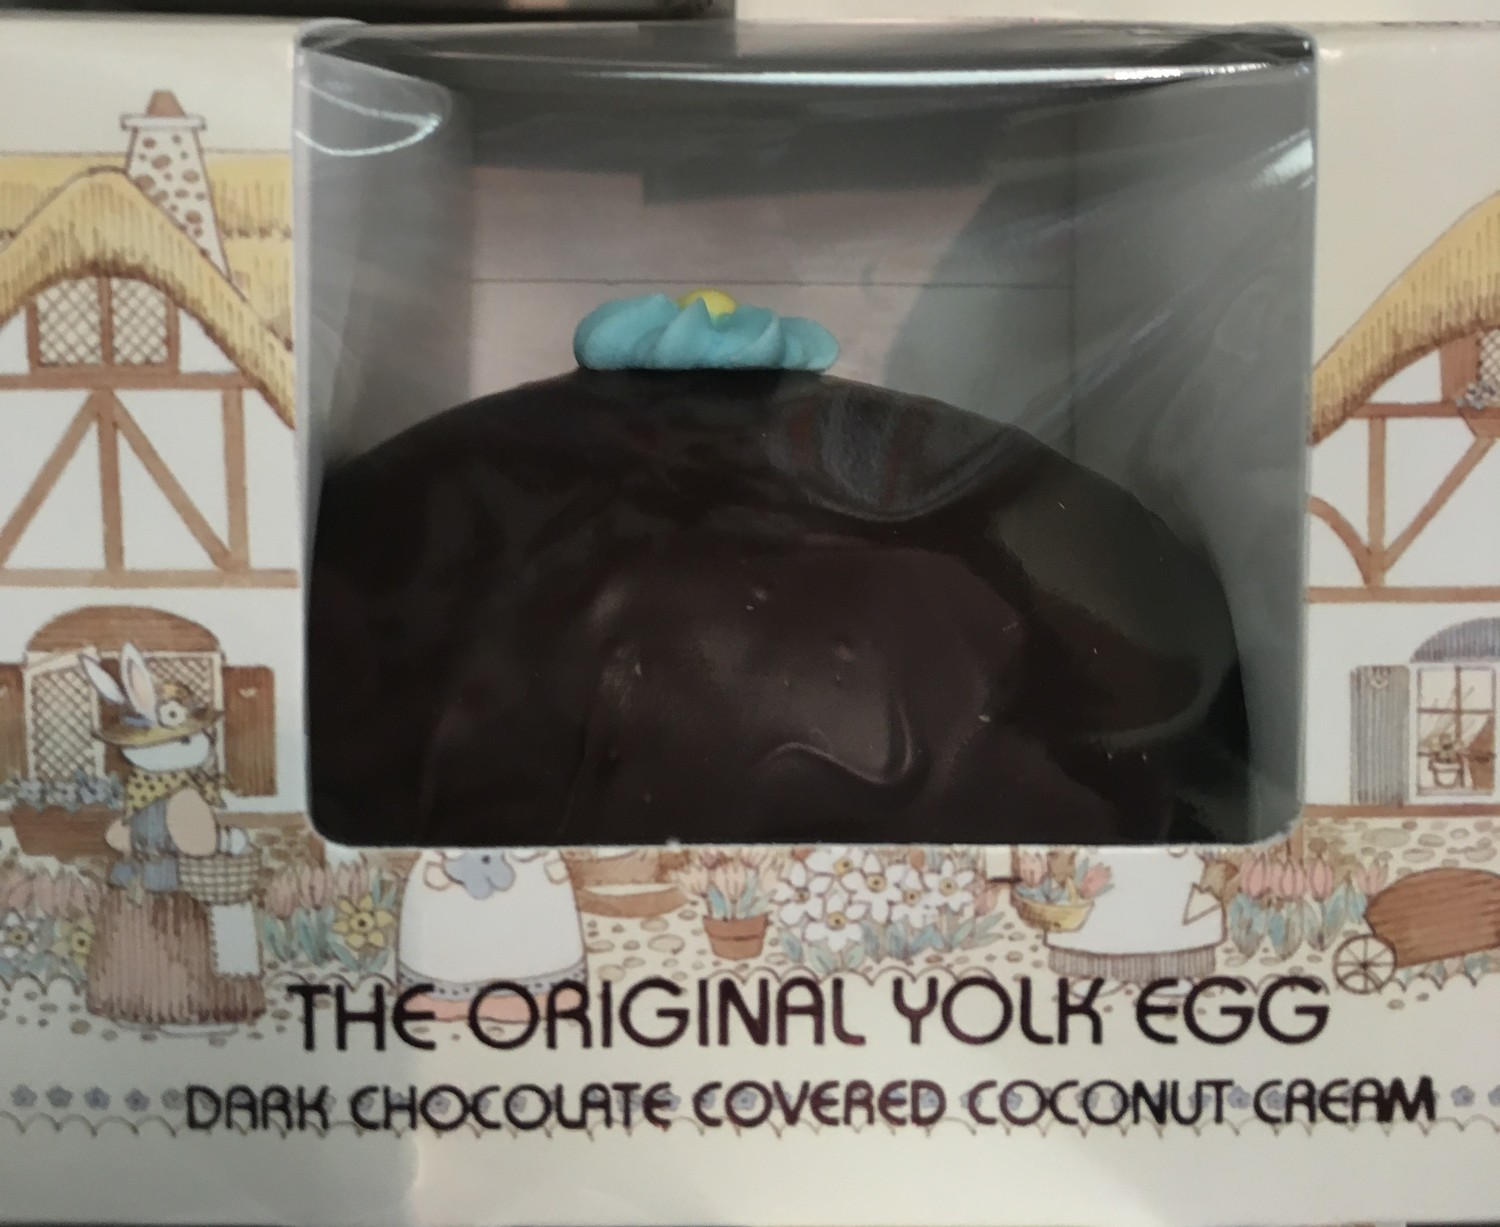 The Original All Father's Yolk Egg 8 oz.